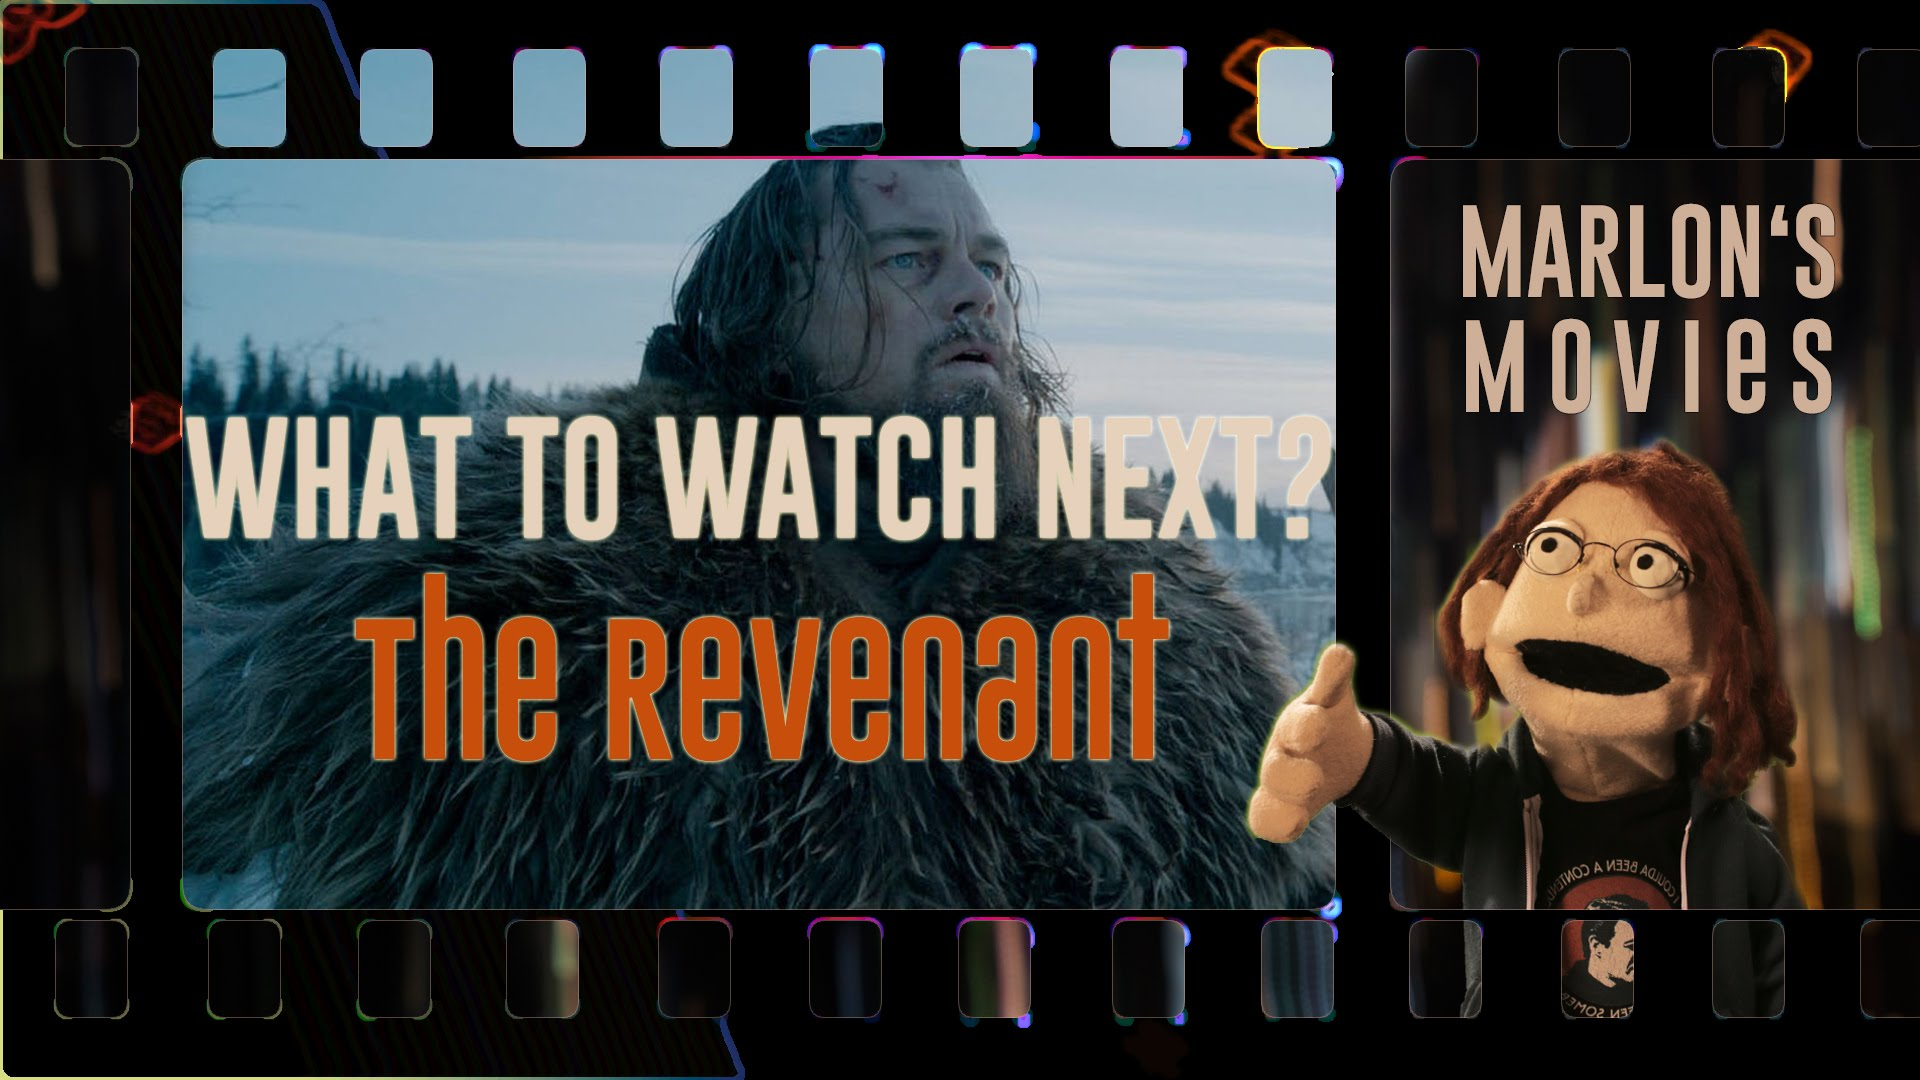 What to Watch Next? – The Revenant